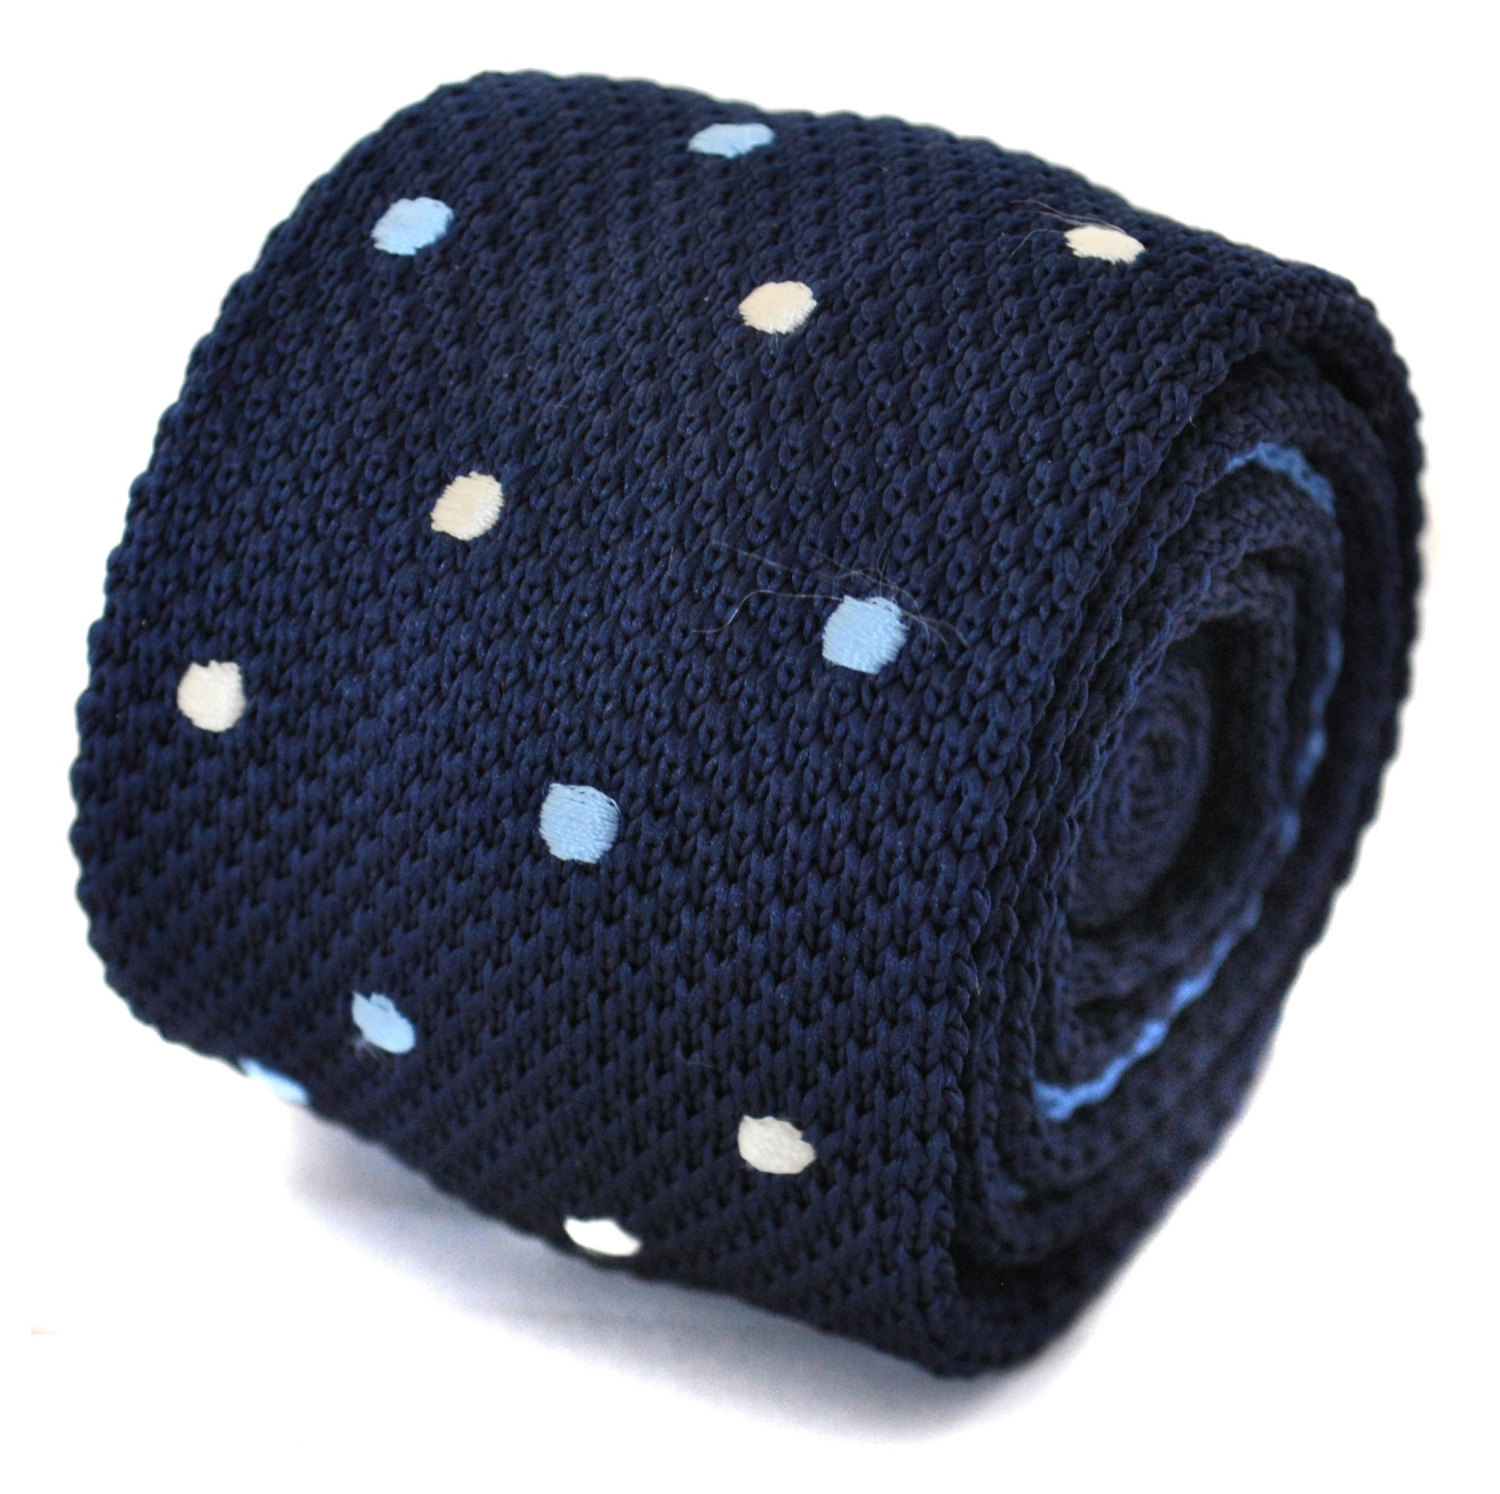 knitted navy with blue and white spotty skinny tie by Frederick Thomas FT1181